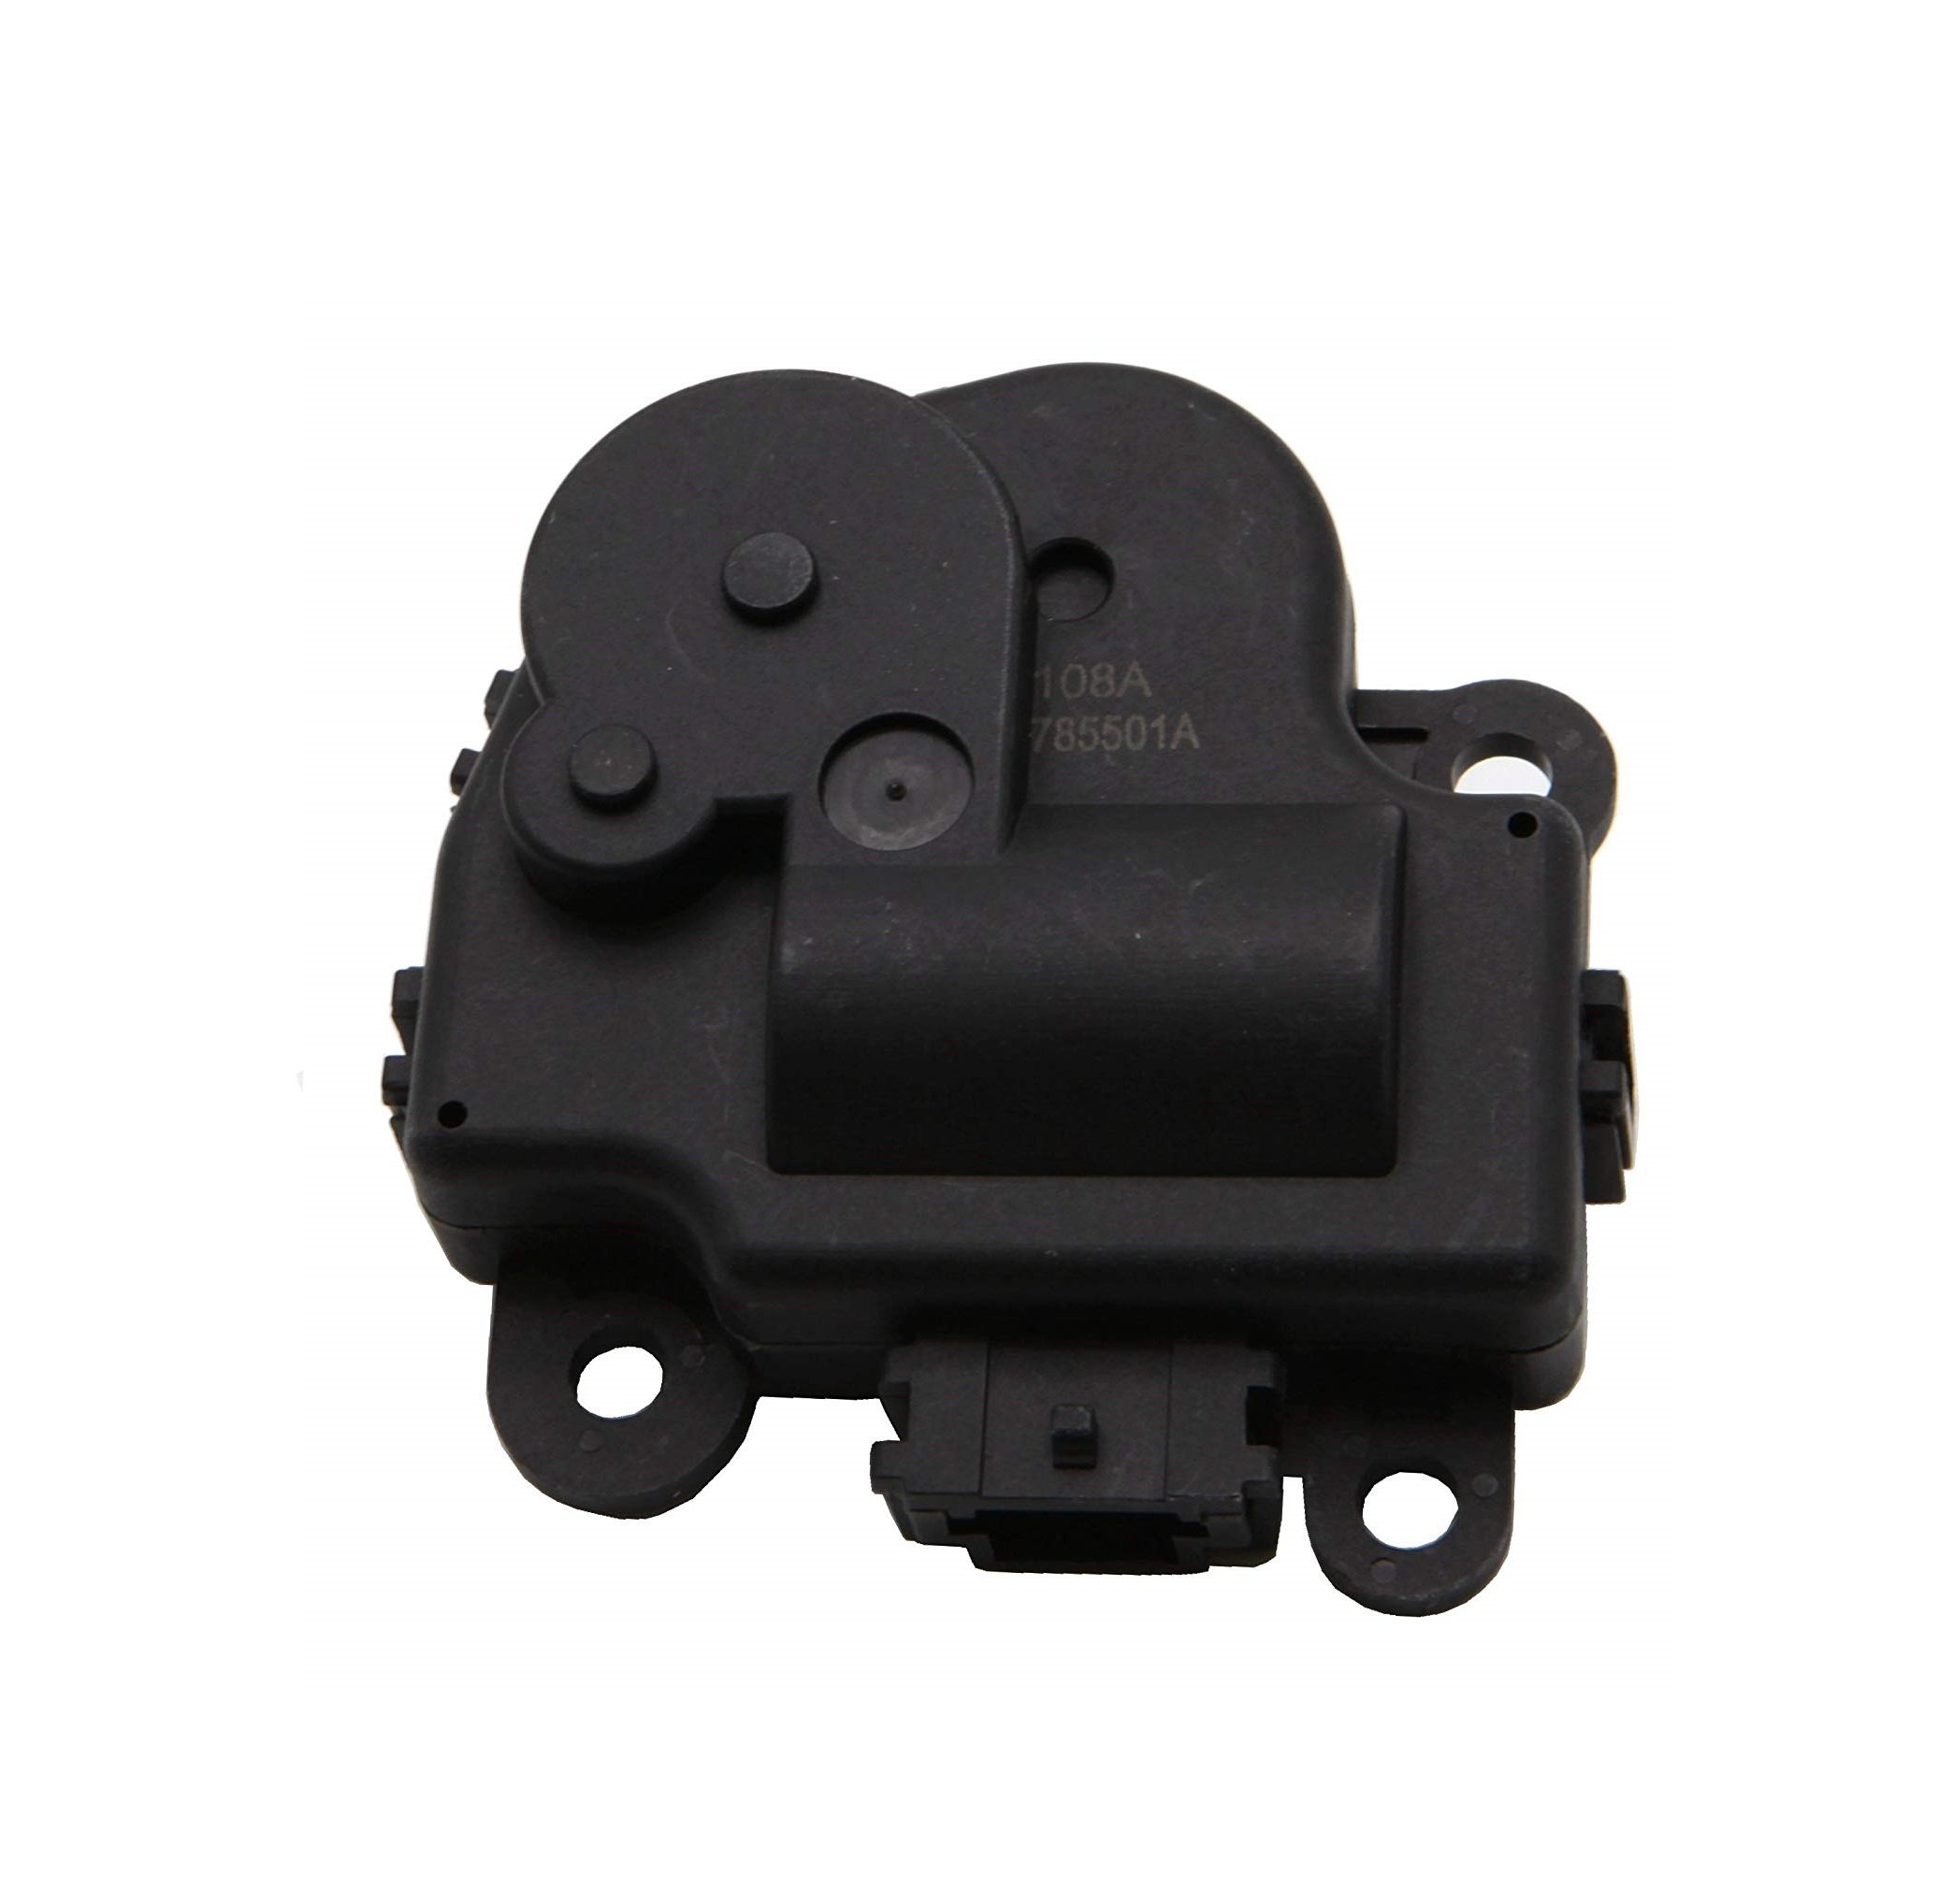 OK108A HVAC Air Door Actuator Fits Chevy Impala 2004-2013 - Replaces# 1573517, 1574122, 15844096, 22754988, 52409974, 604-108, 15-74122, 604108 Heater Temperature Blend Door Actuator by OKAYPARTS